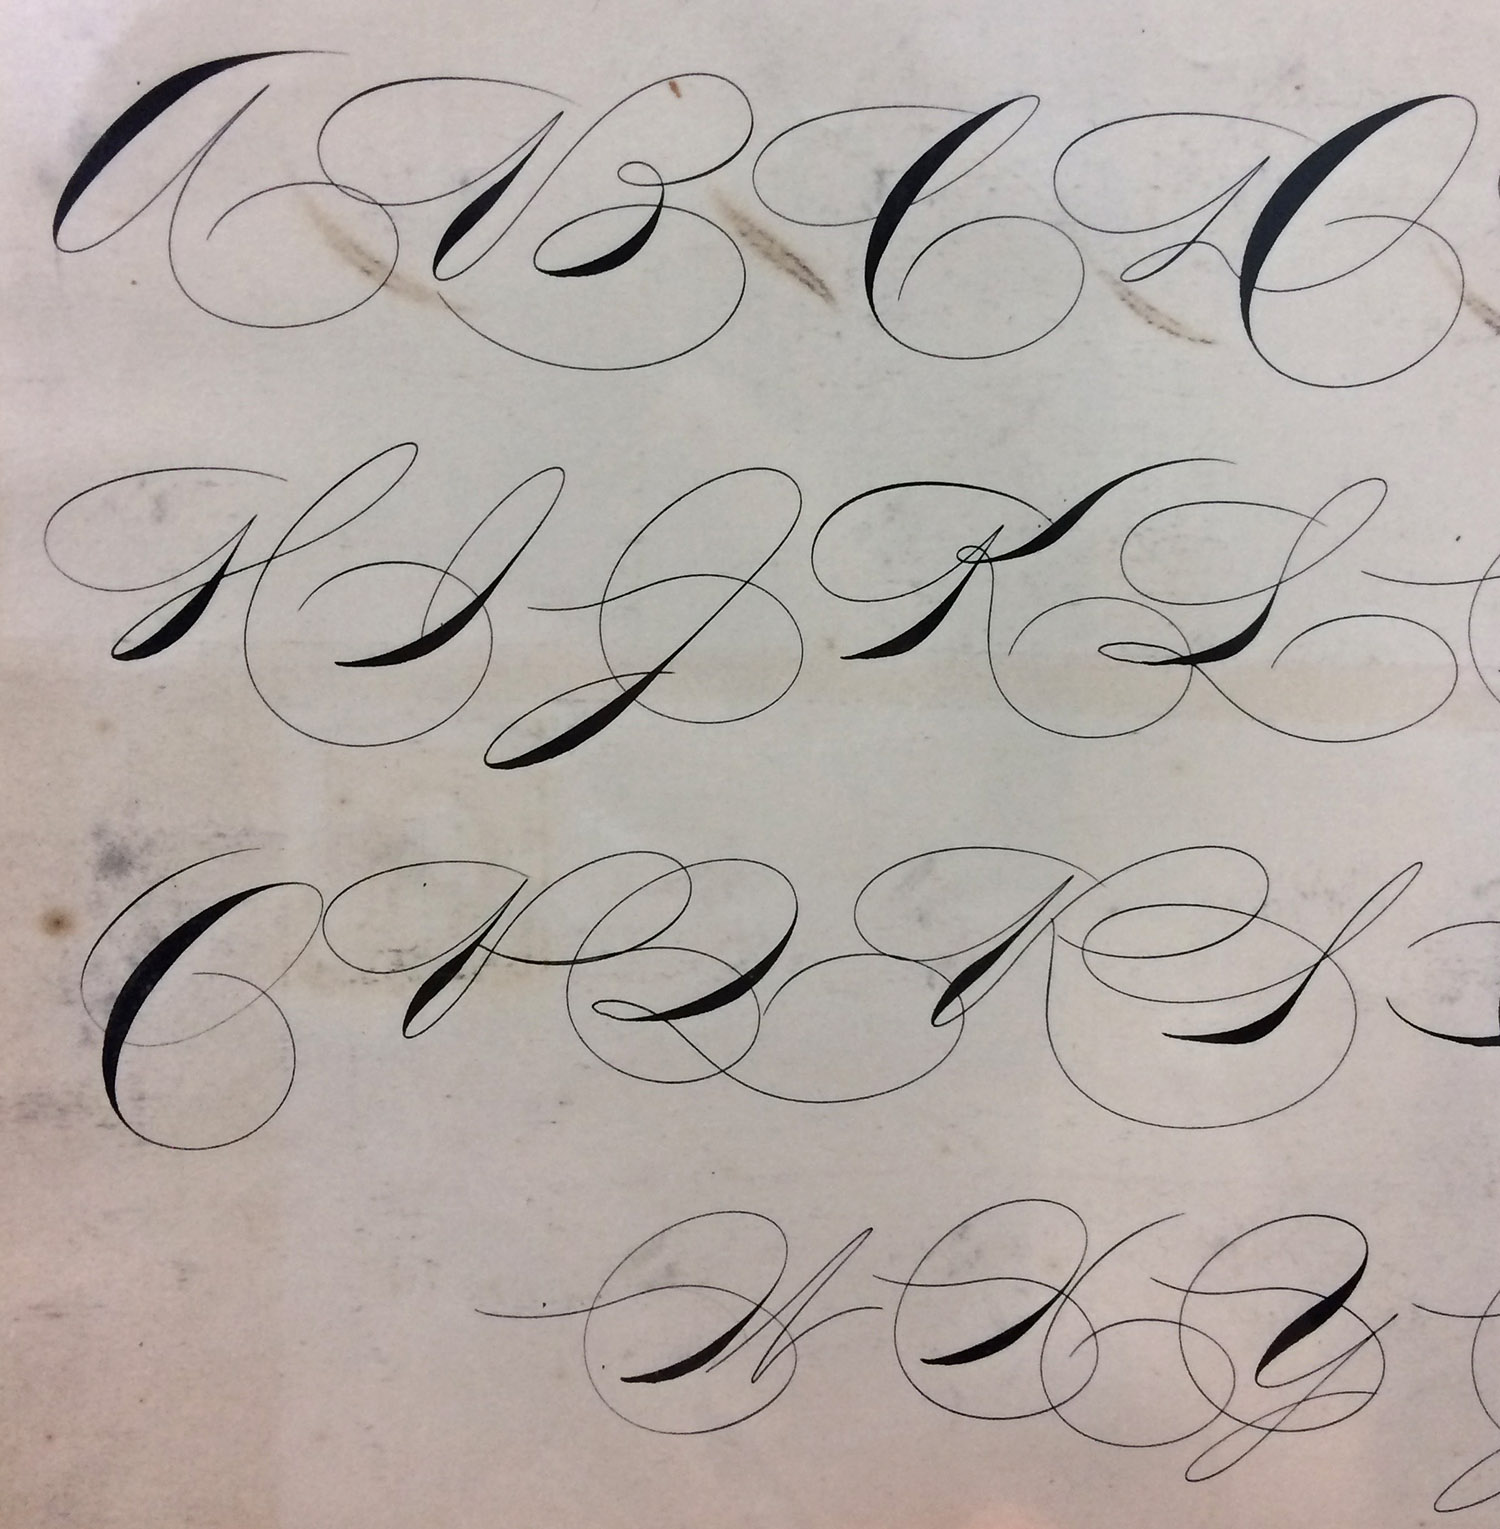 penmaship_specimens_letterforms_011.jpg